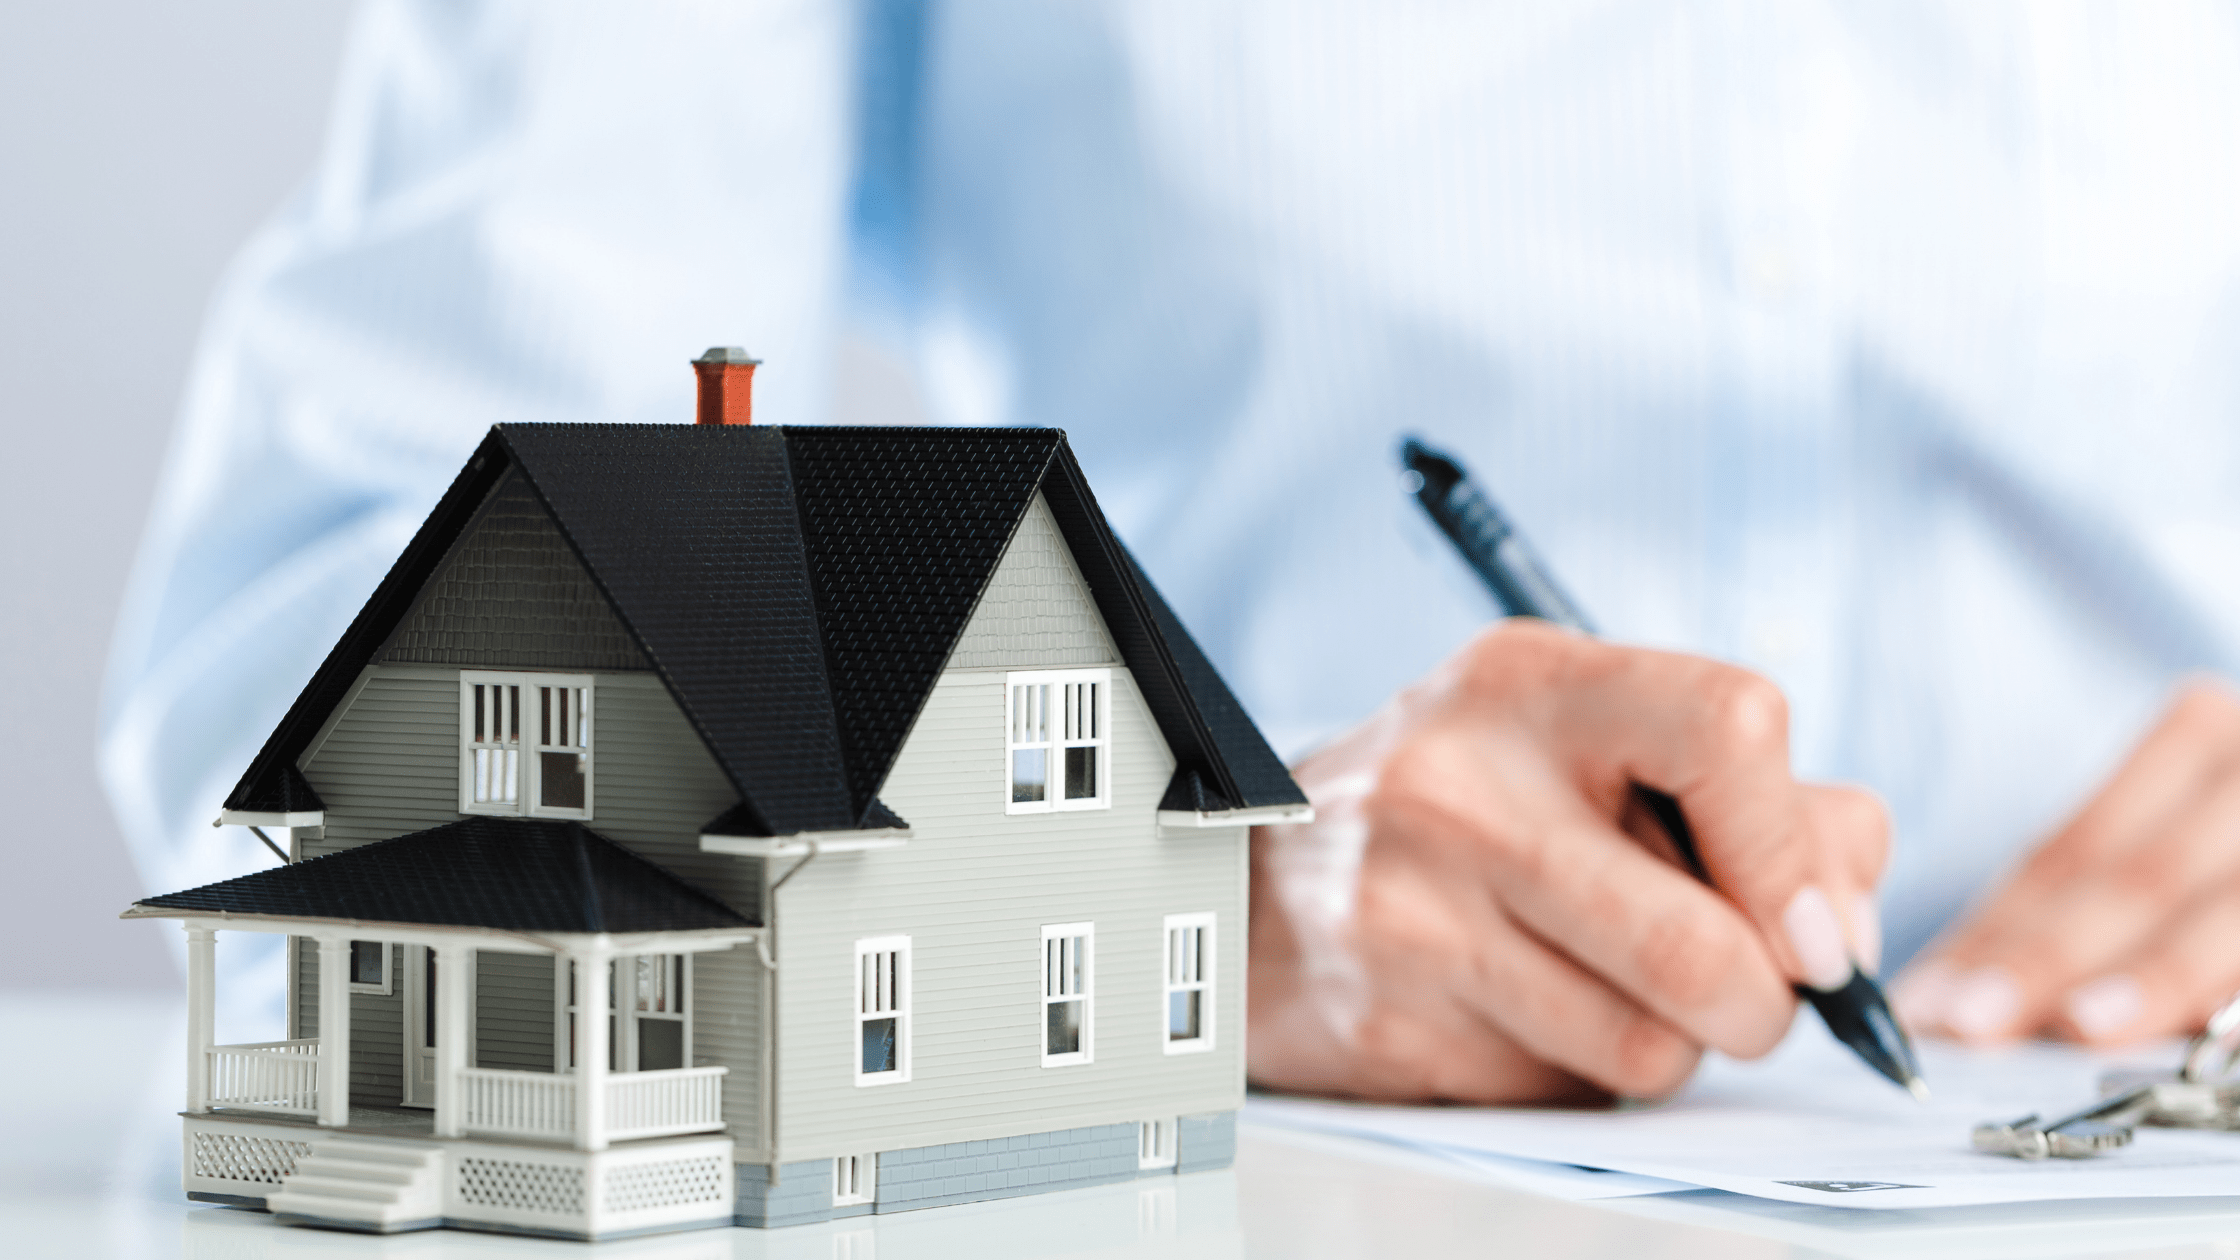 THE SELLER'S GUIDE TO PREPARING FOR YOUR HOME INSPECTION